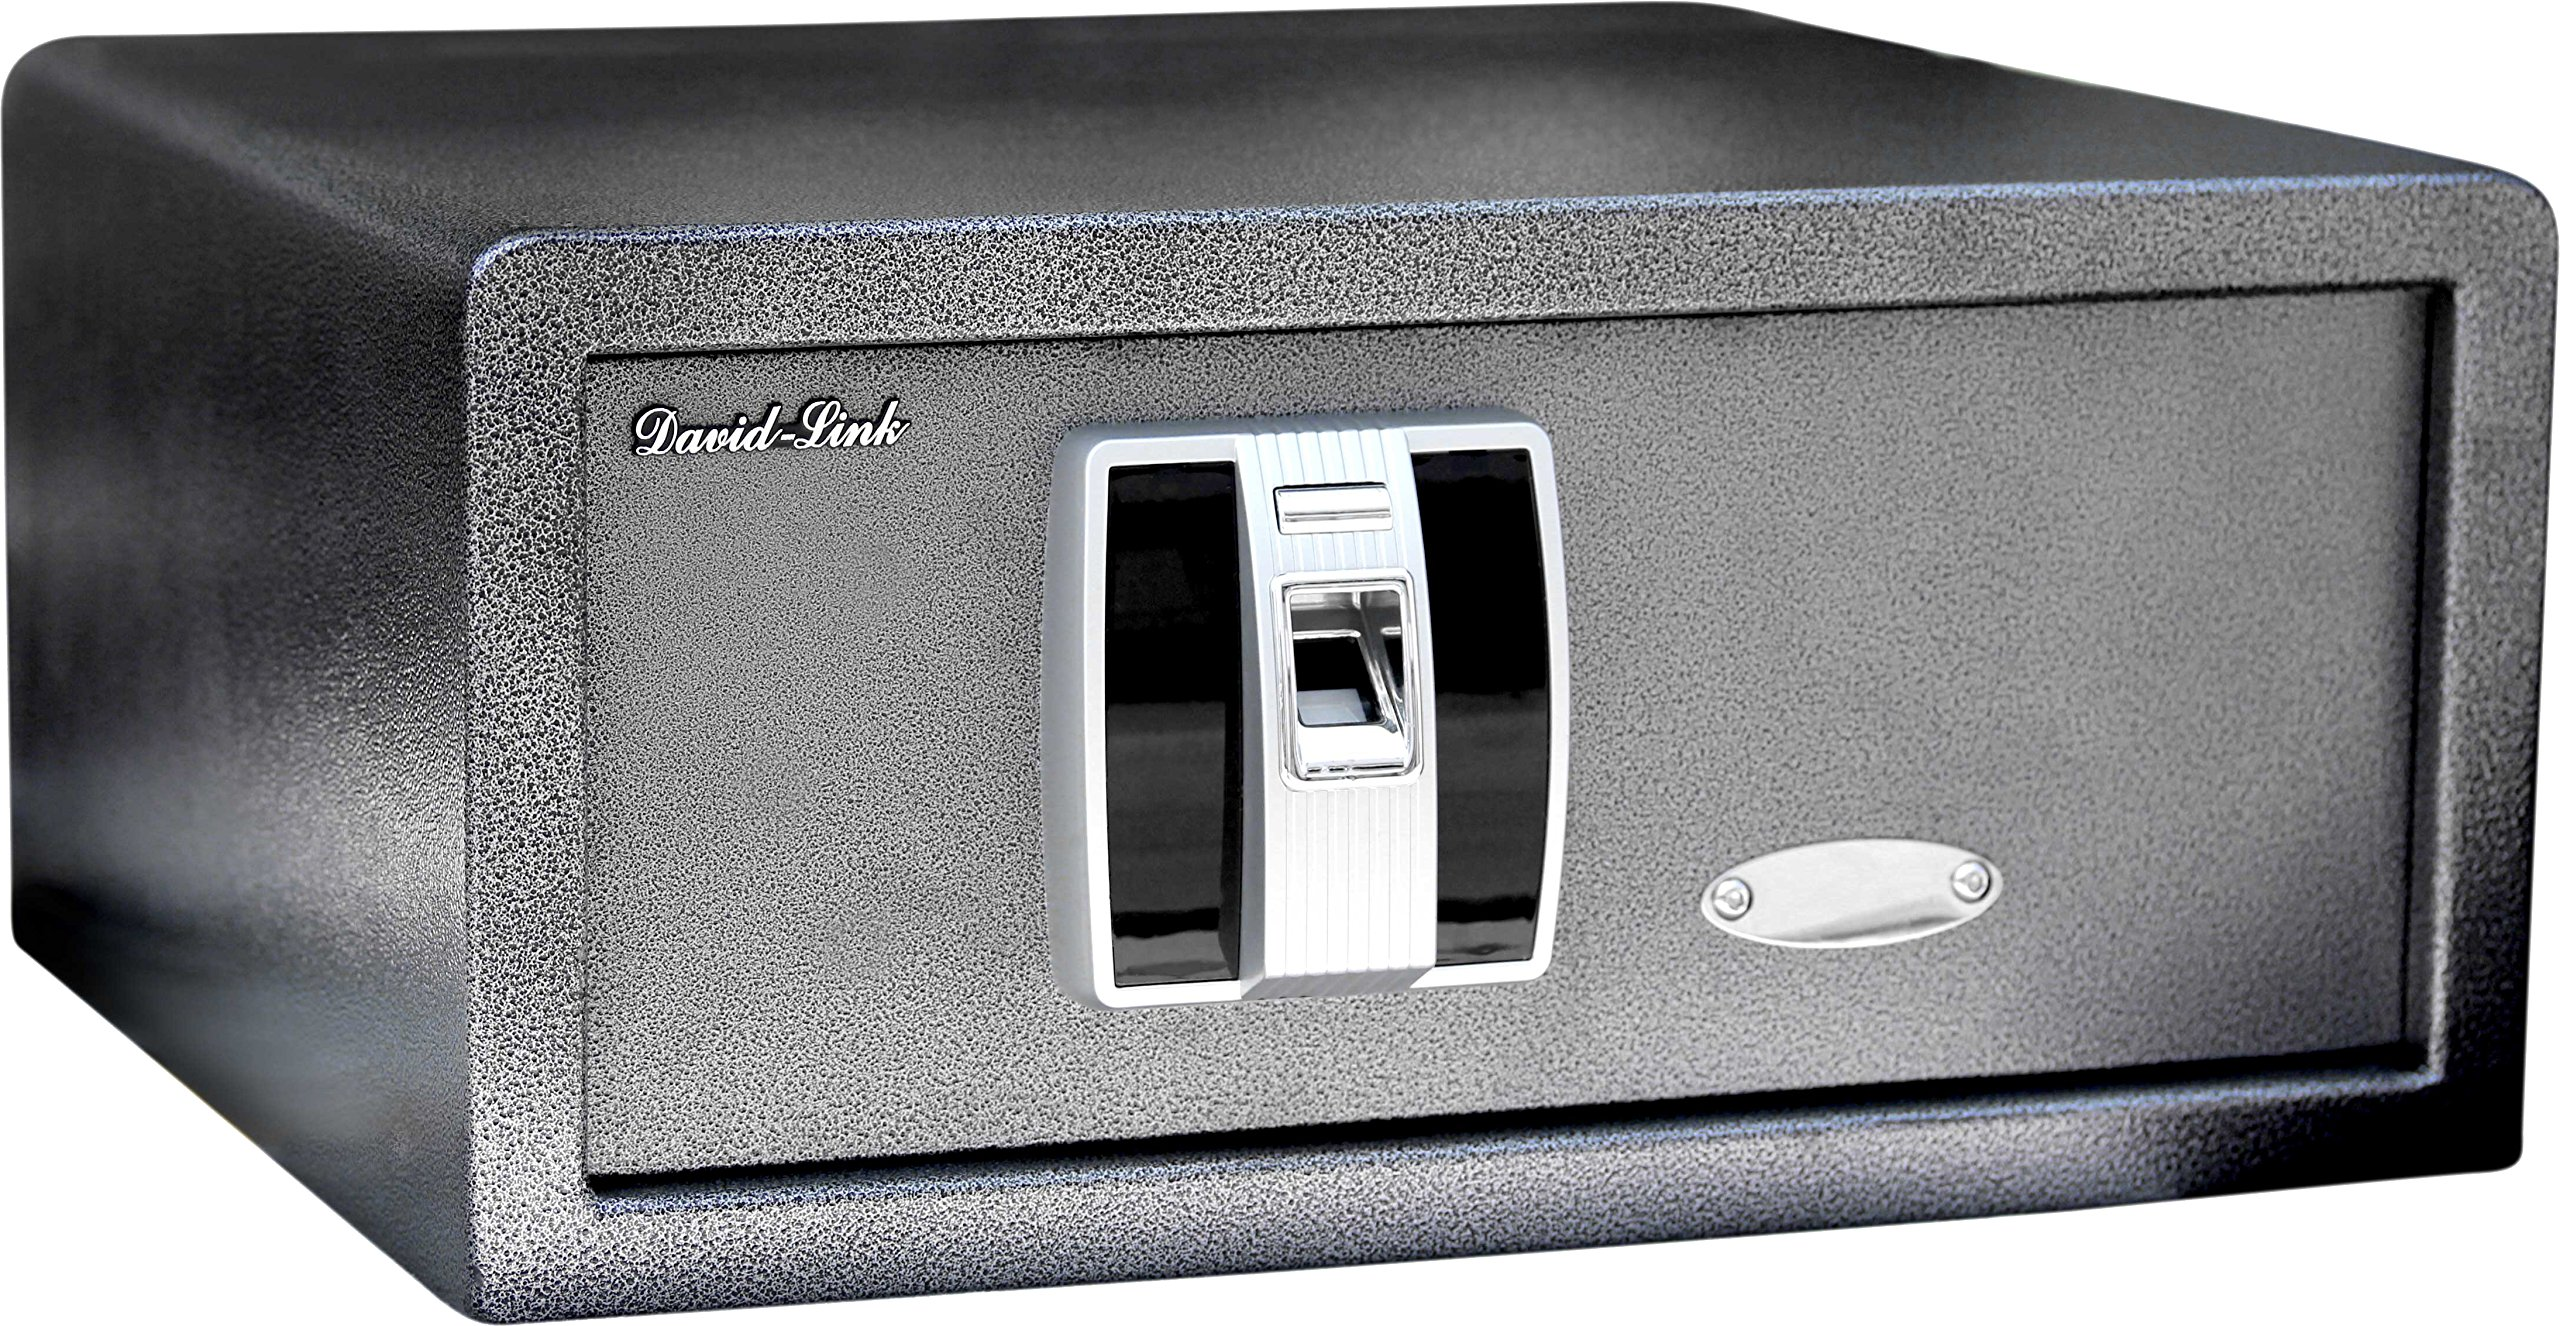 David-Link BioSec-H1 Biometric Electronic Home Safe, 8'' Height x 15'' Length x 16.5'' Width, Carbon by David-Link